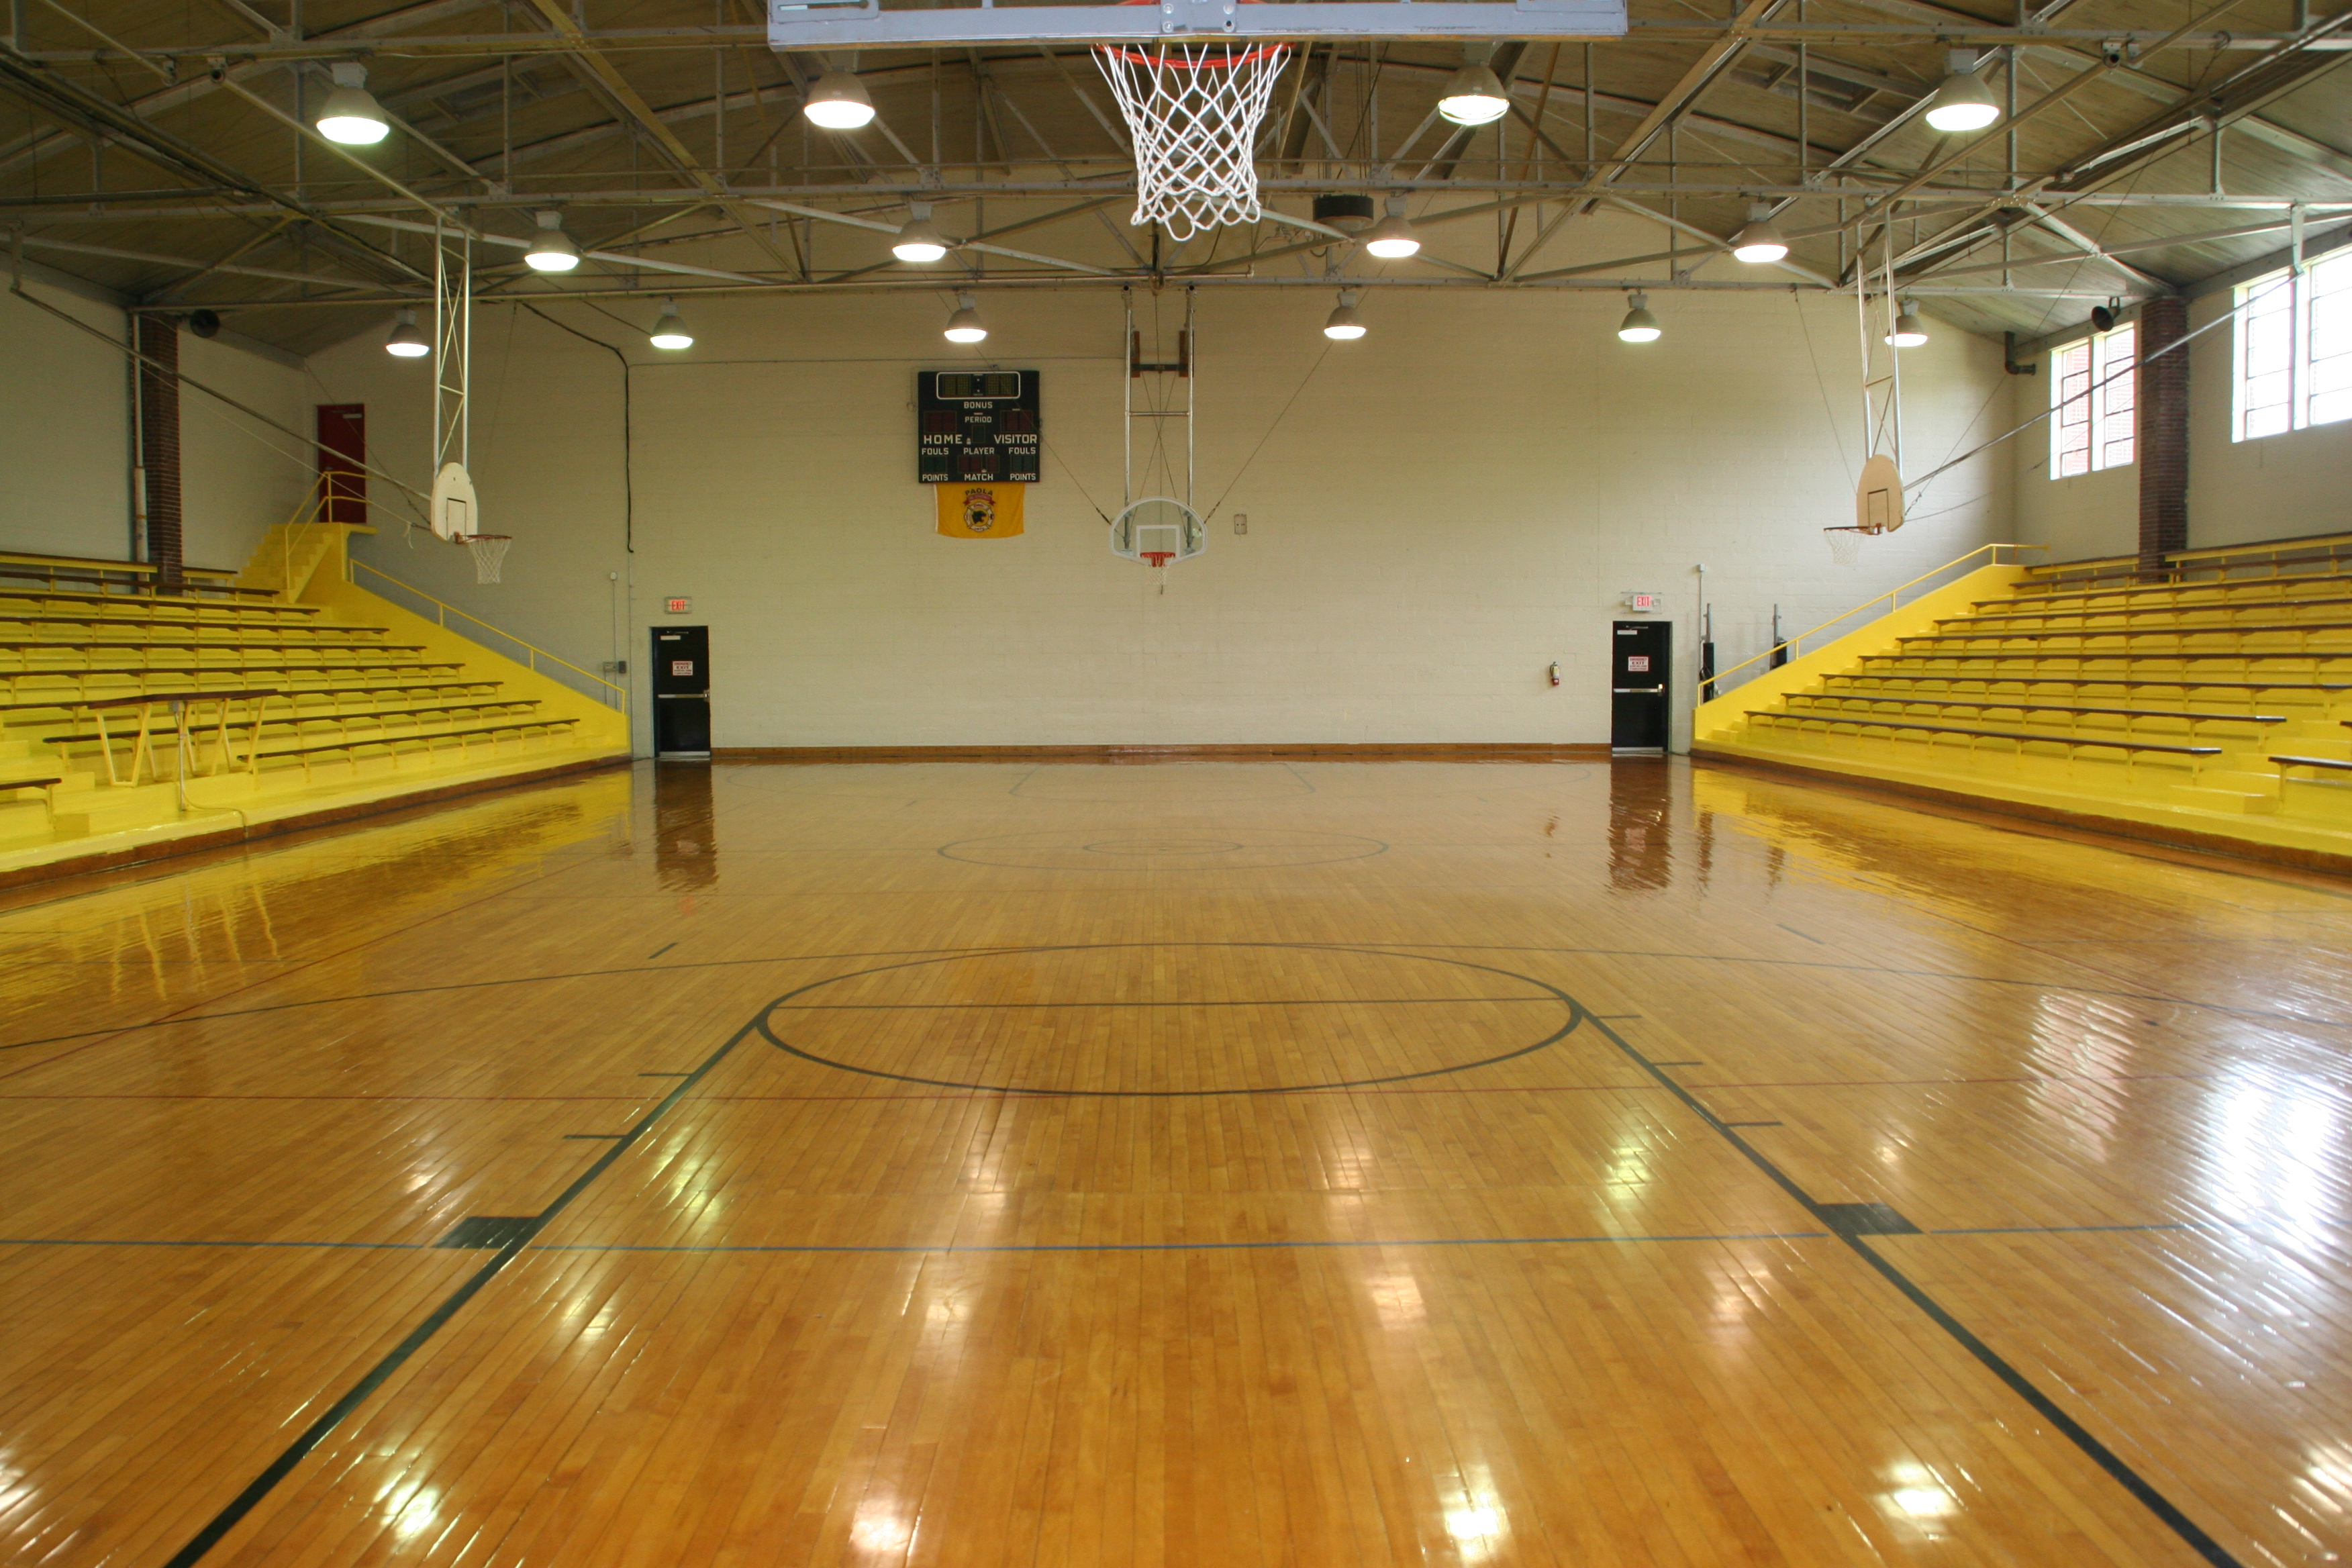 Indoor basketball court background